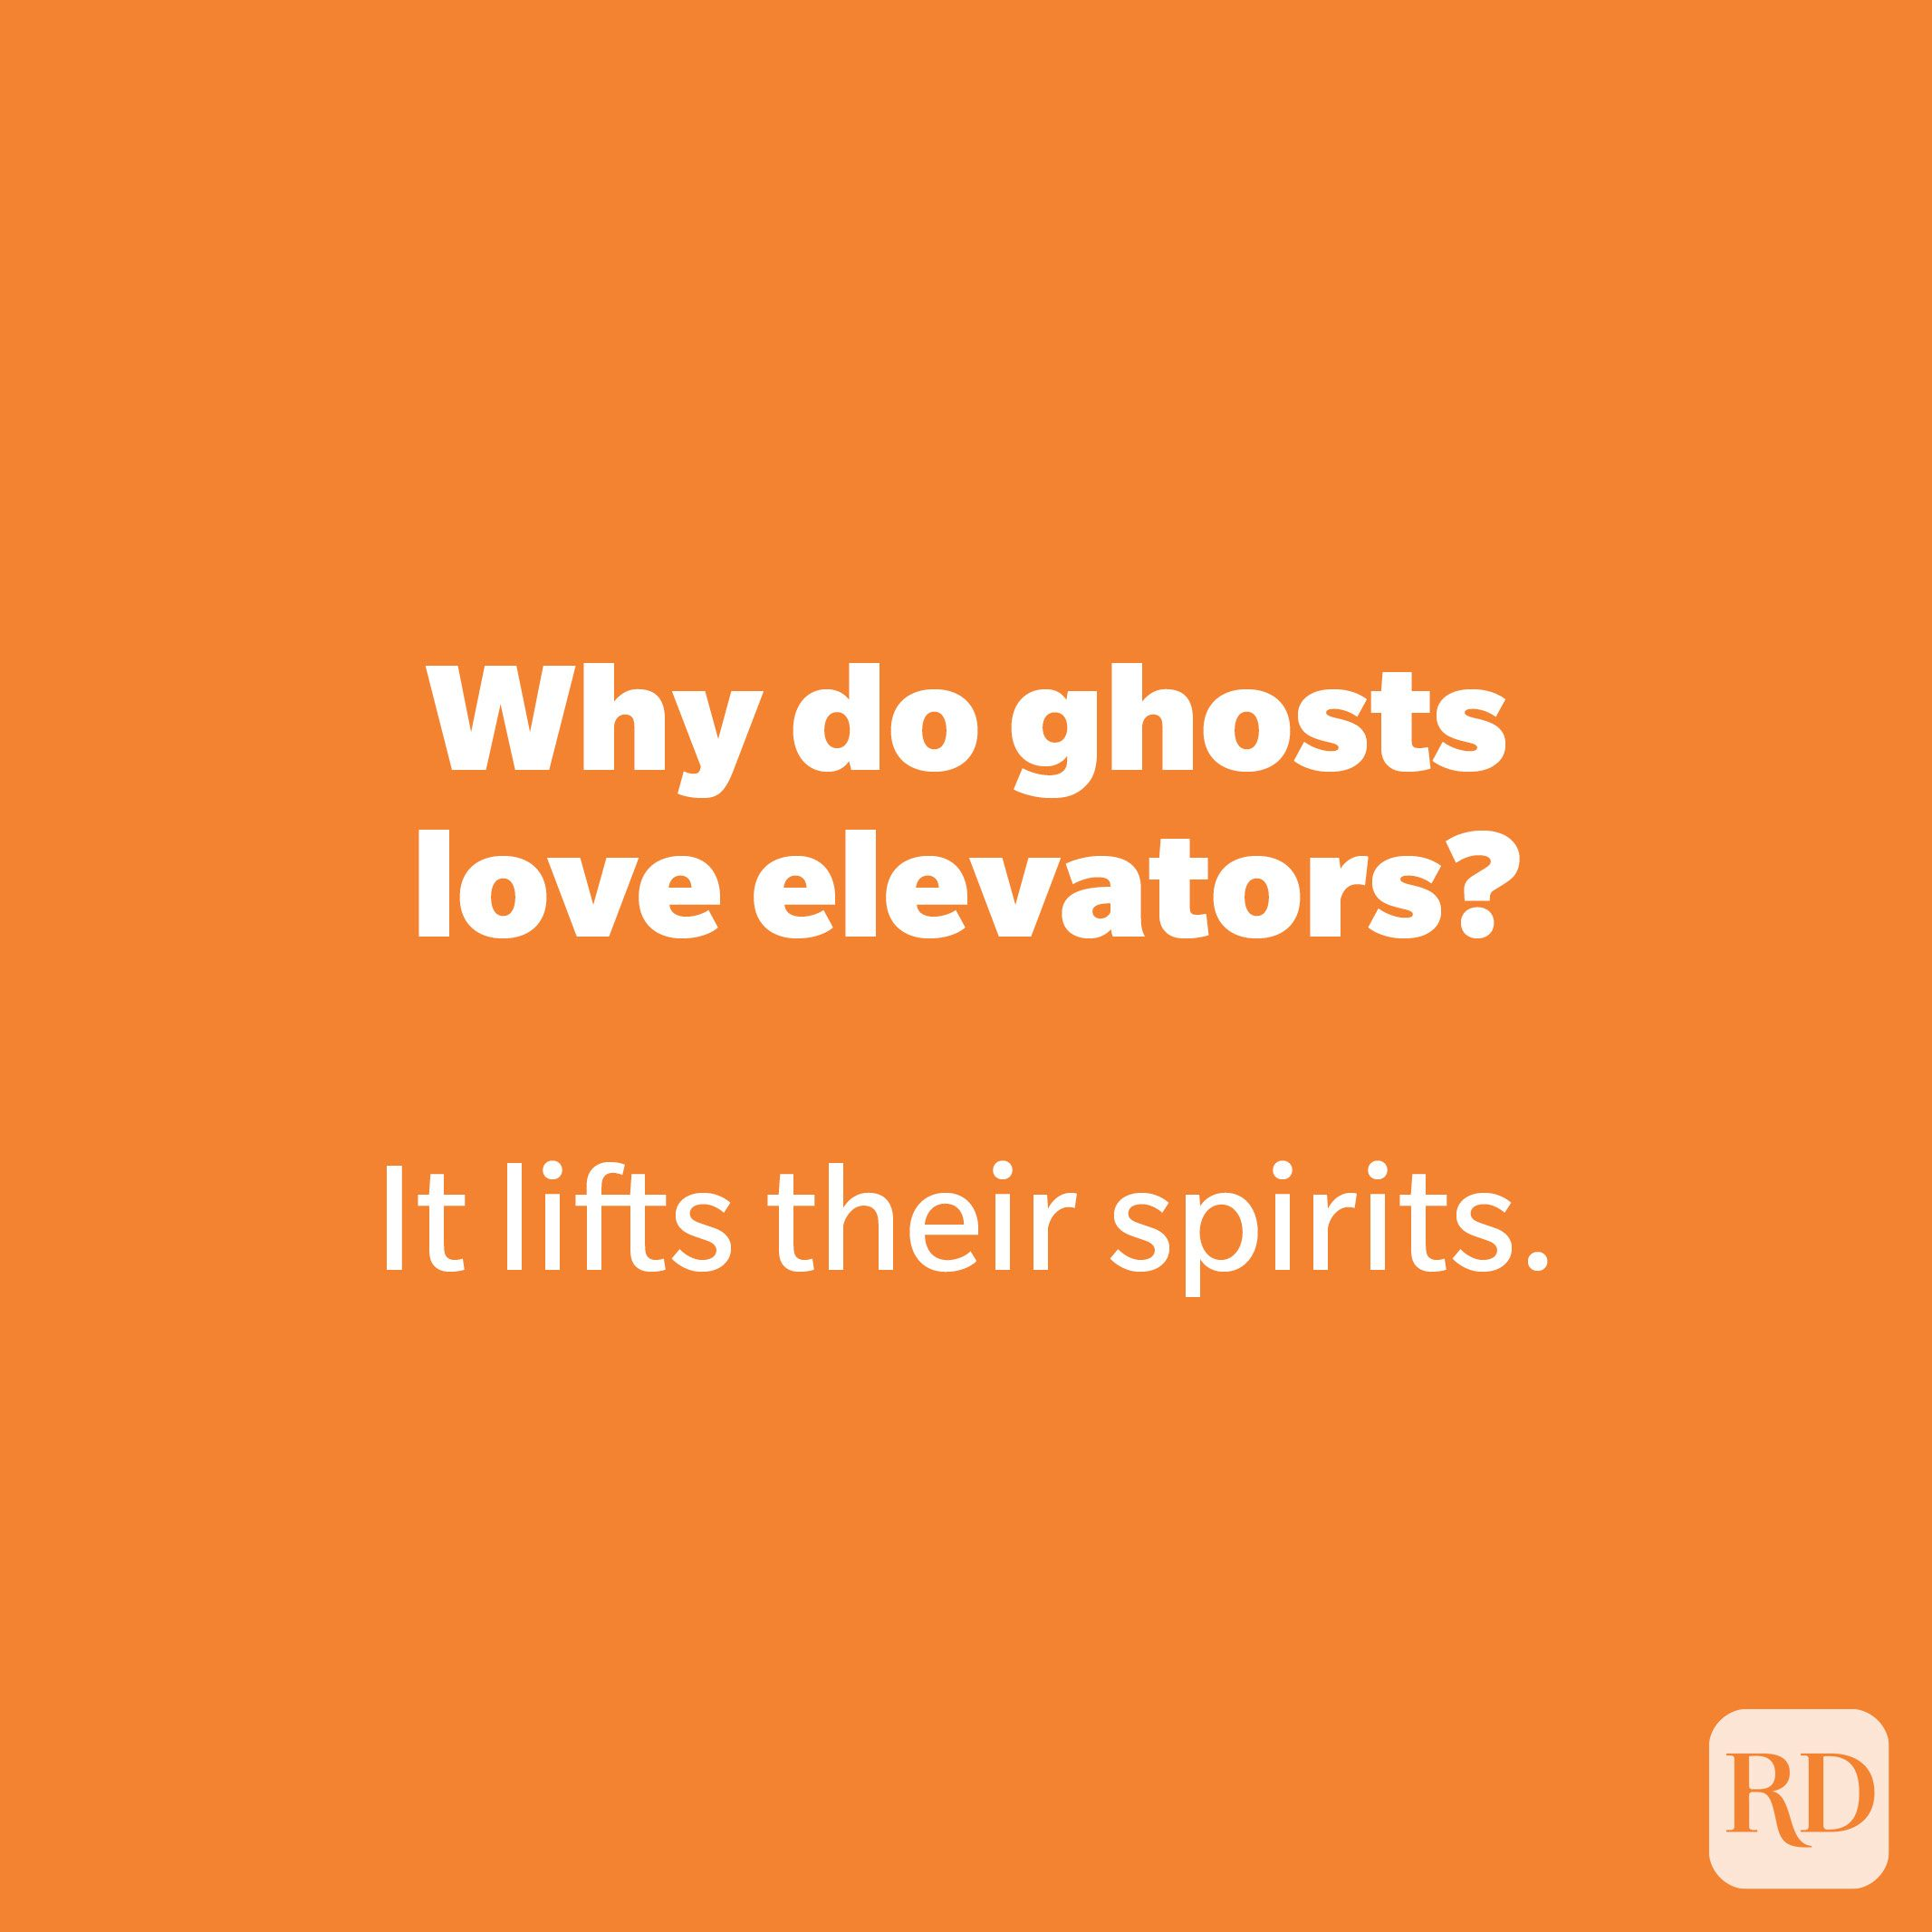 Why do ghosts love elevators?